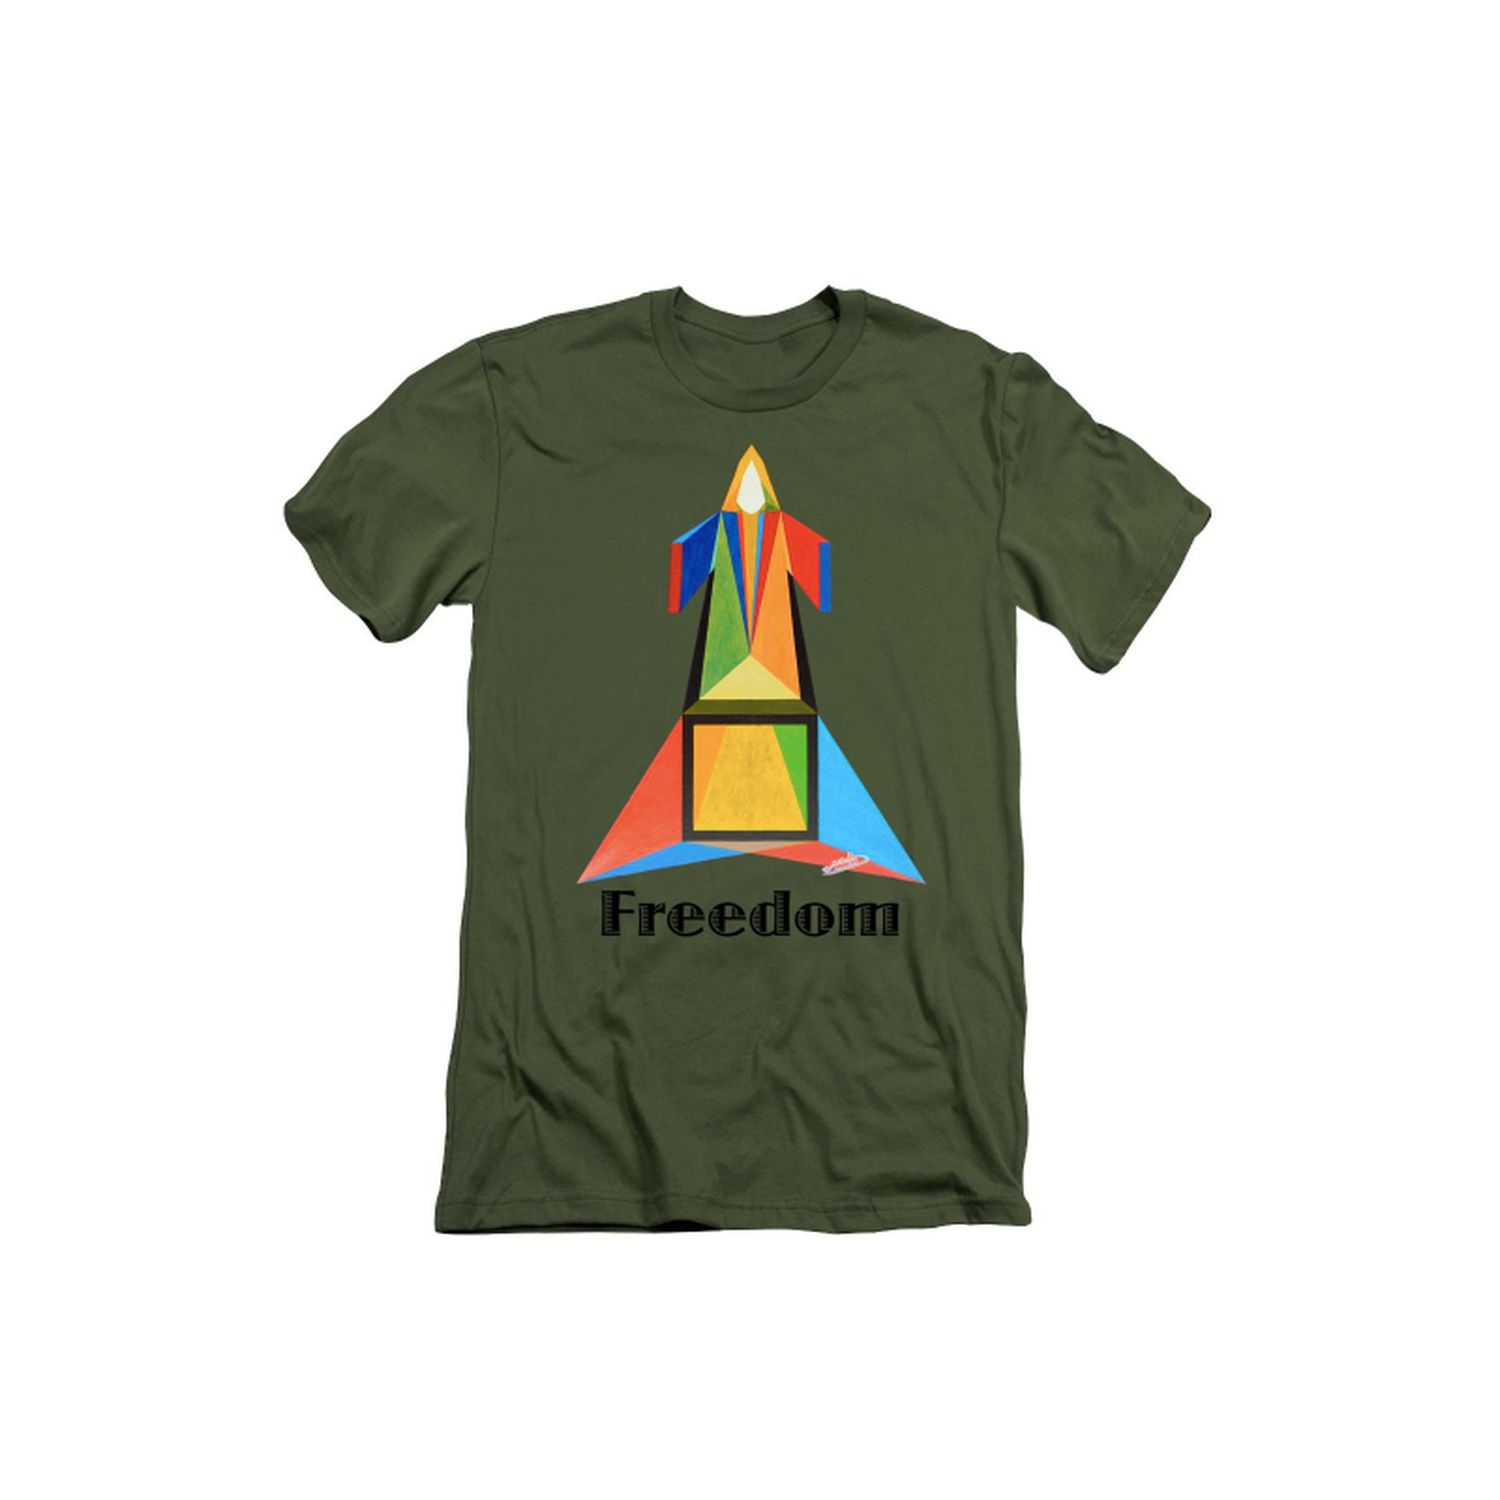 Paradoxical Freedom's Tee-shirt. (Military Green)